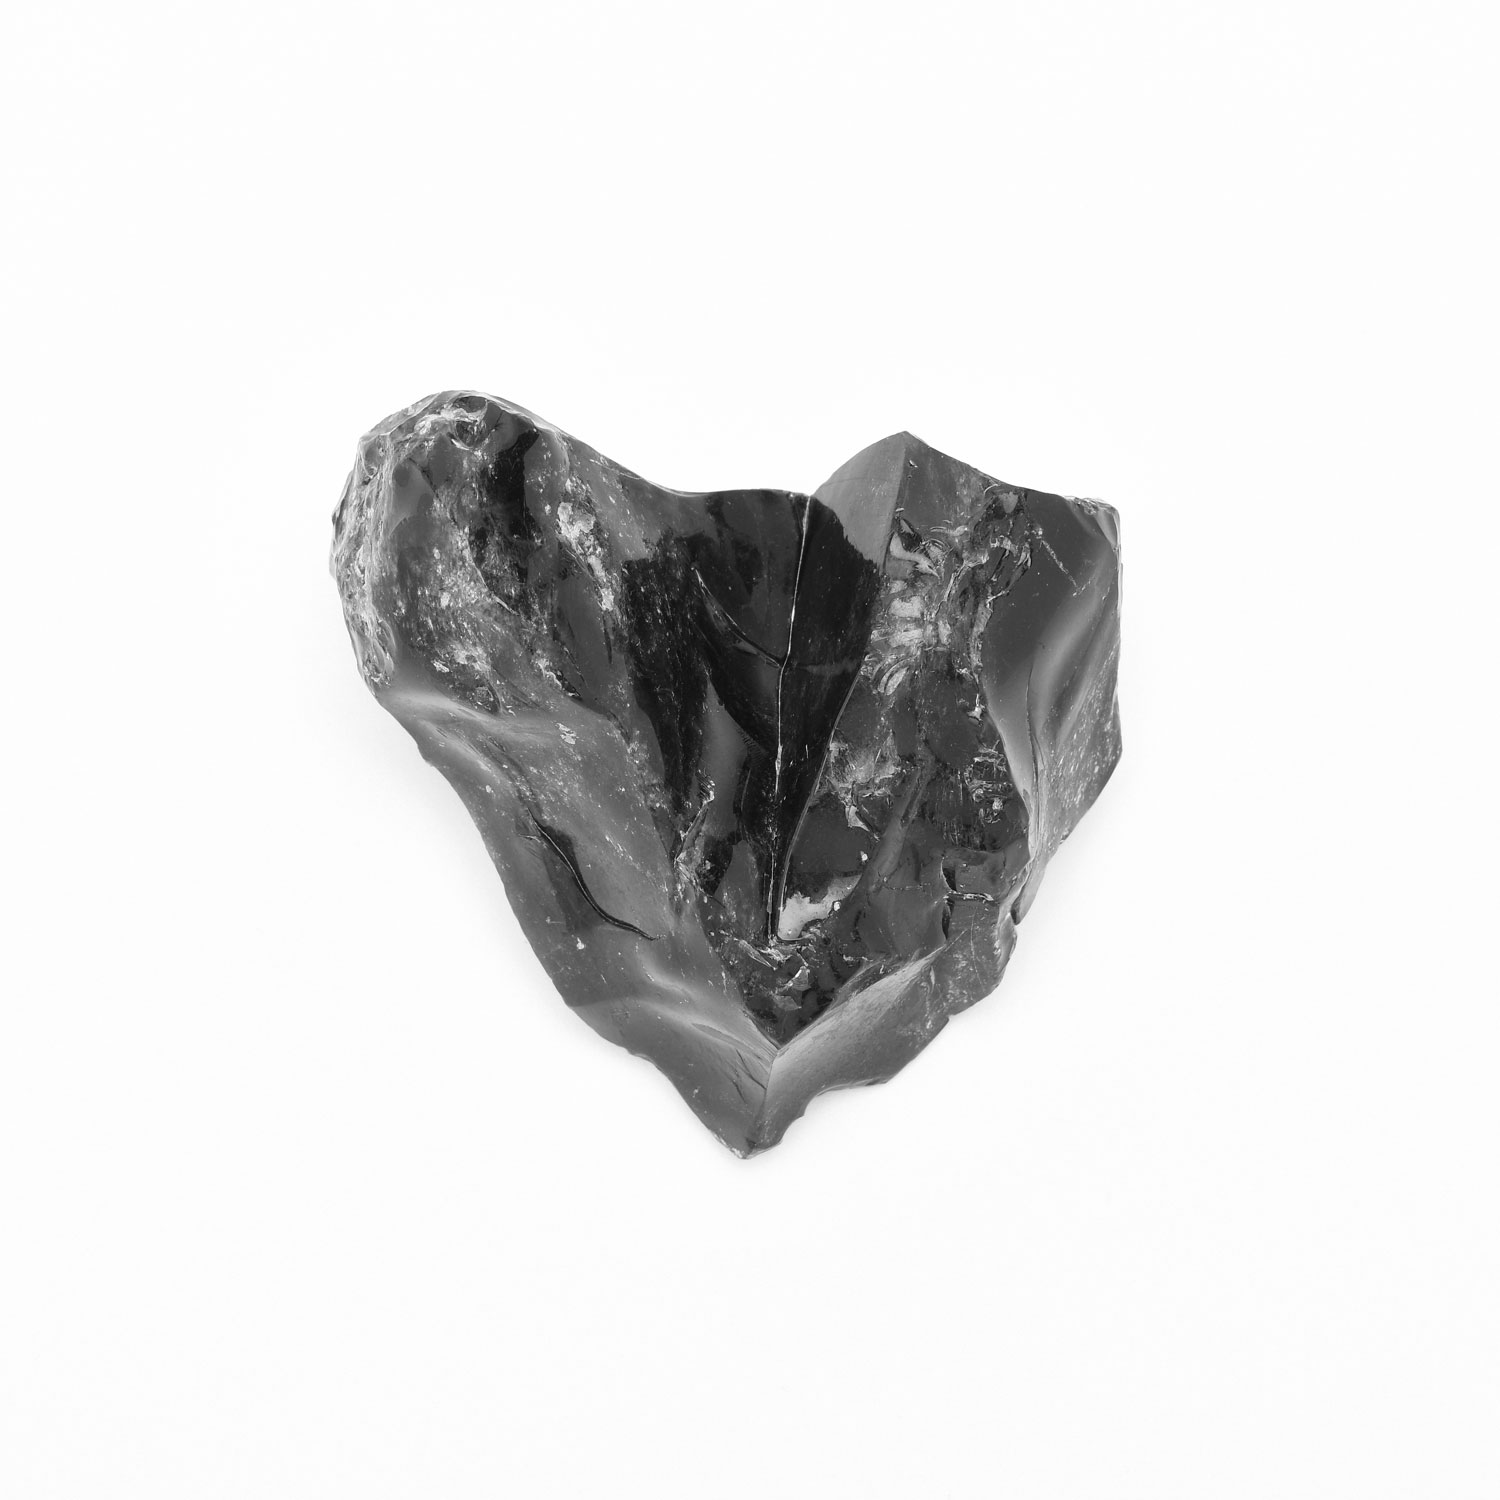 An obsidian heart found that day.